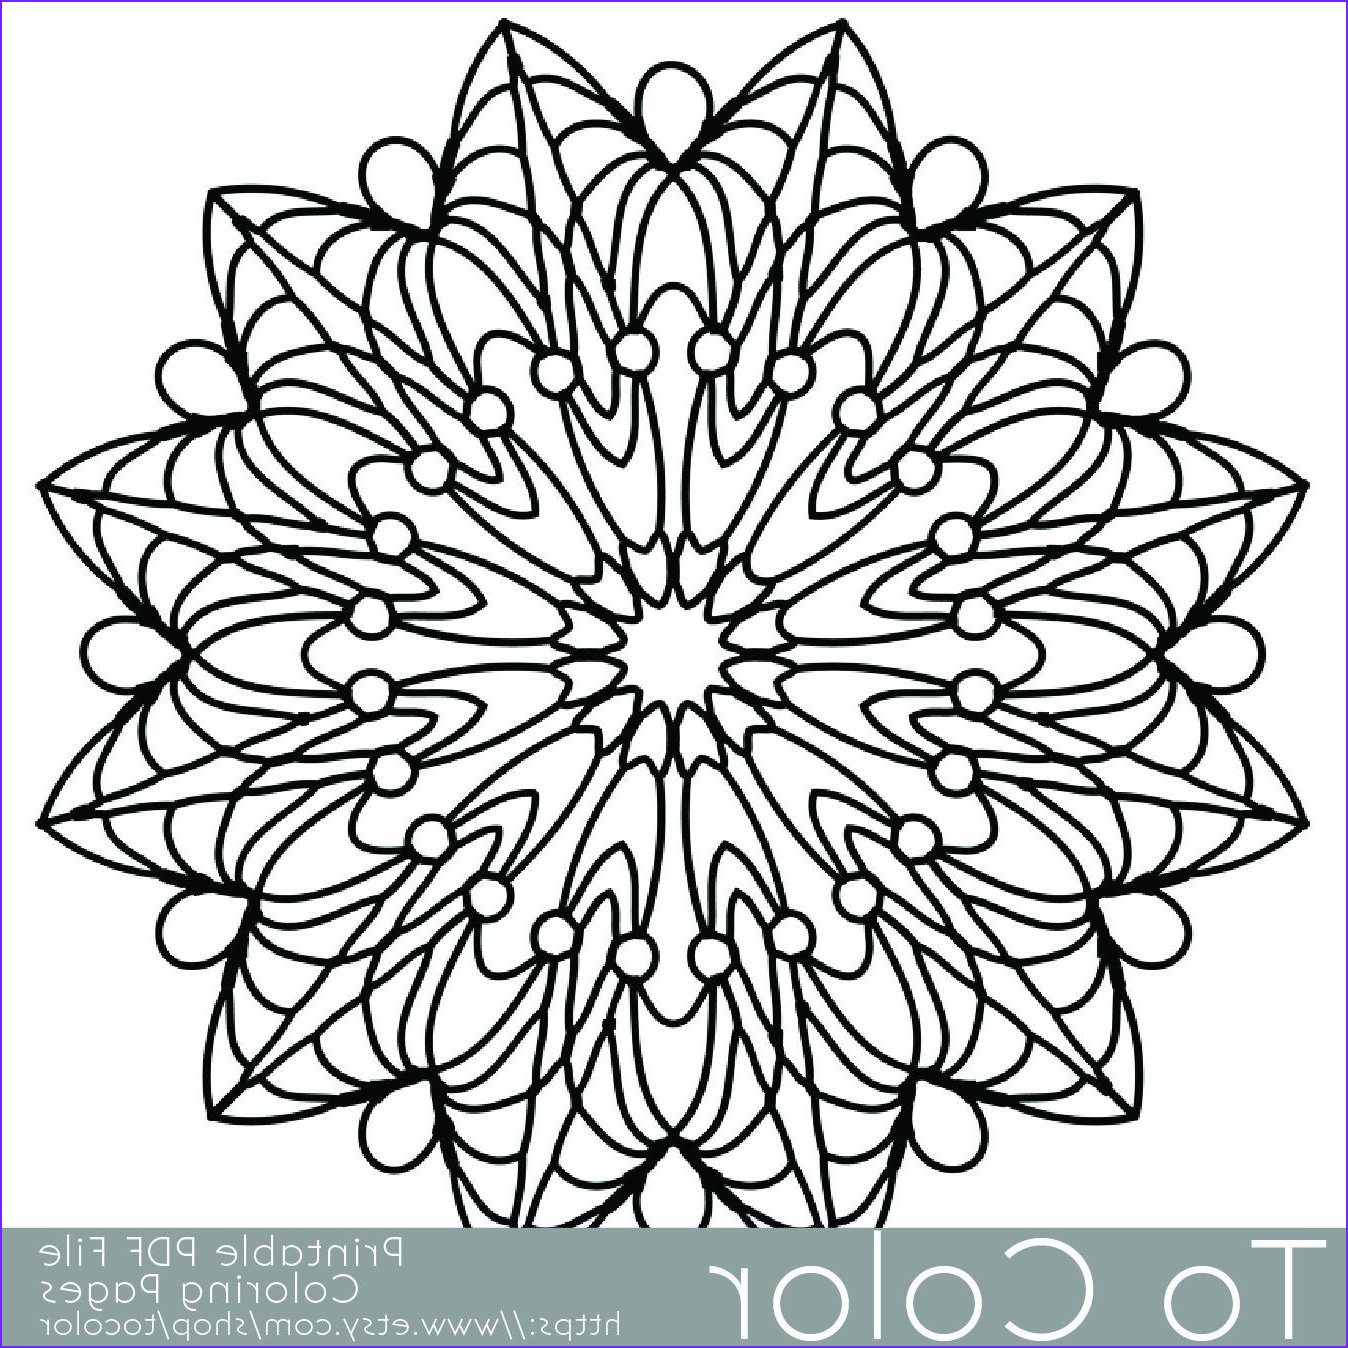 Adult Coloring Book Colored Best Of Photography Simple Printable Coloring Pages for Adults Gel Pens Mandala